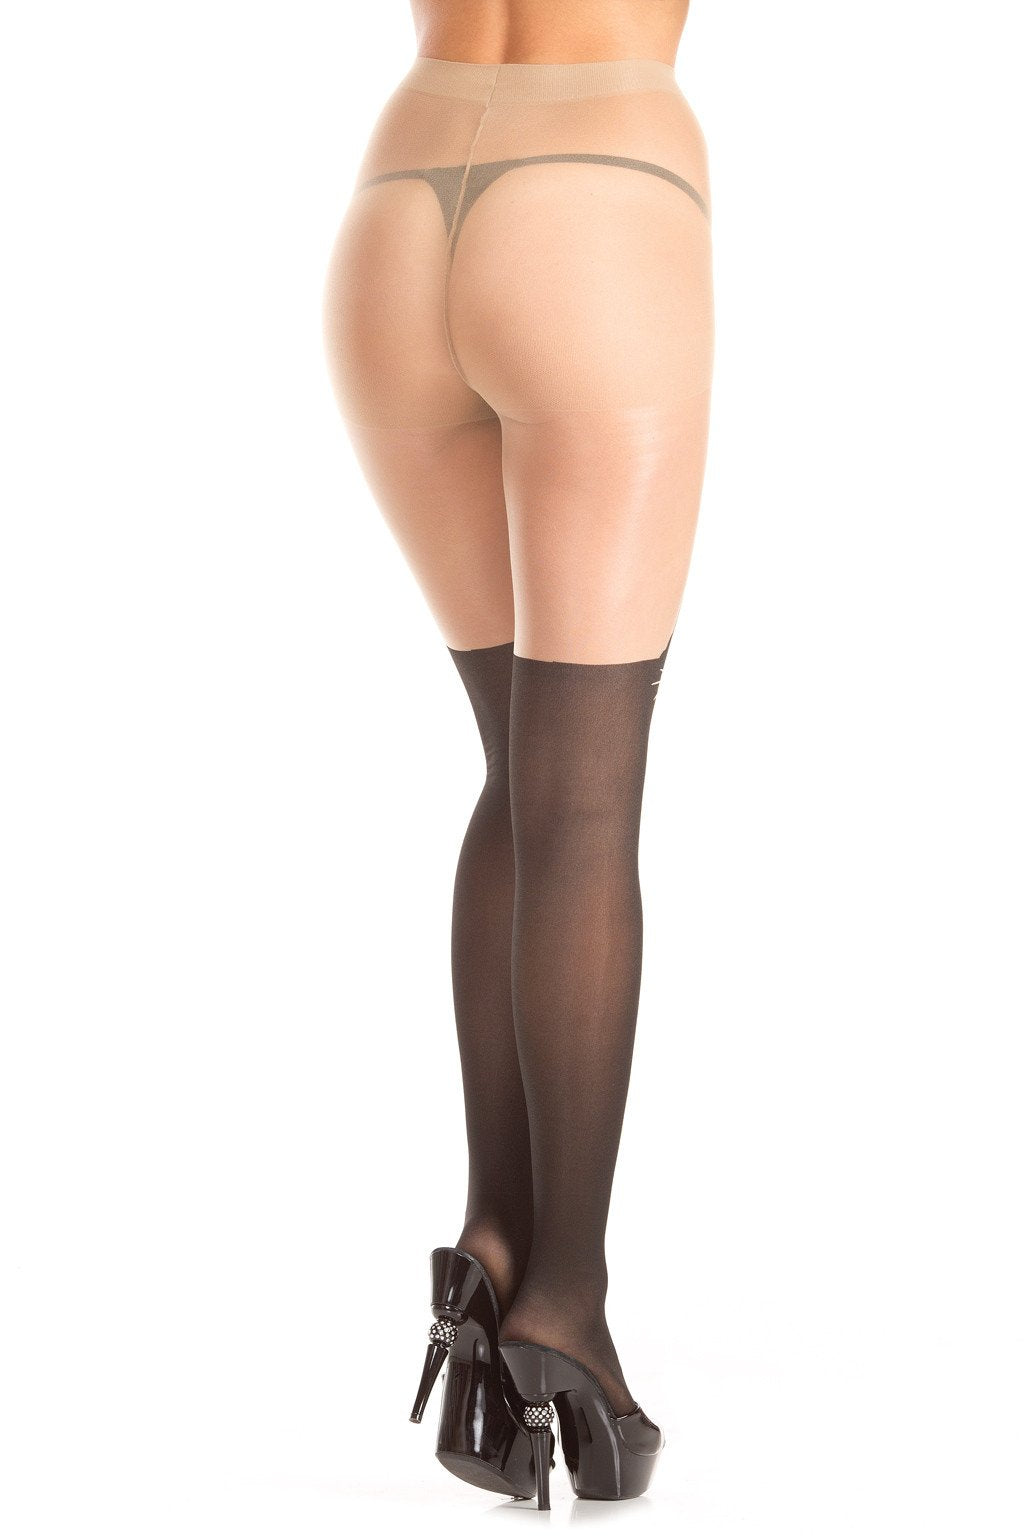 Cute Kitten Pantyhose Cats Hosiery- La La Trends